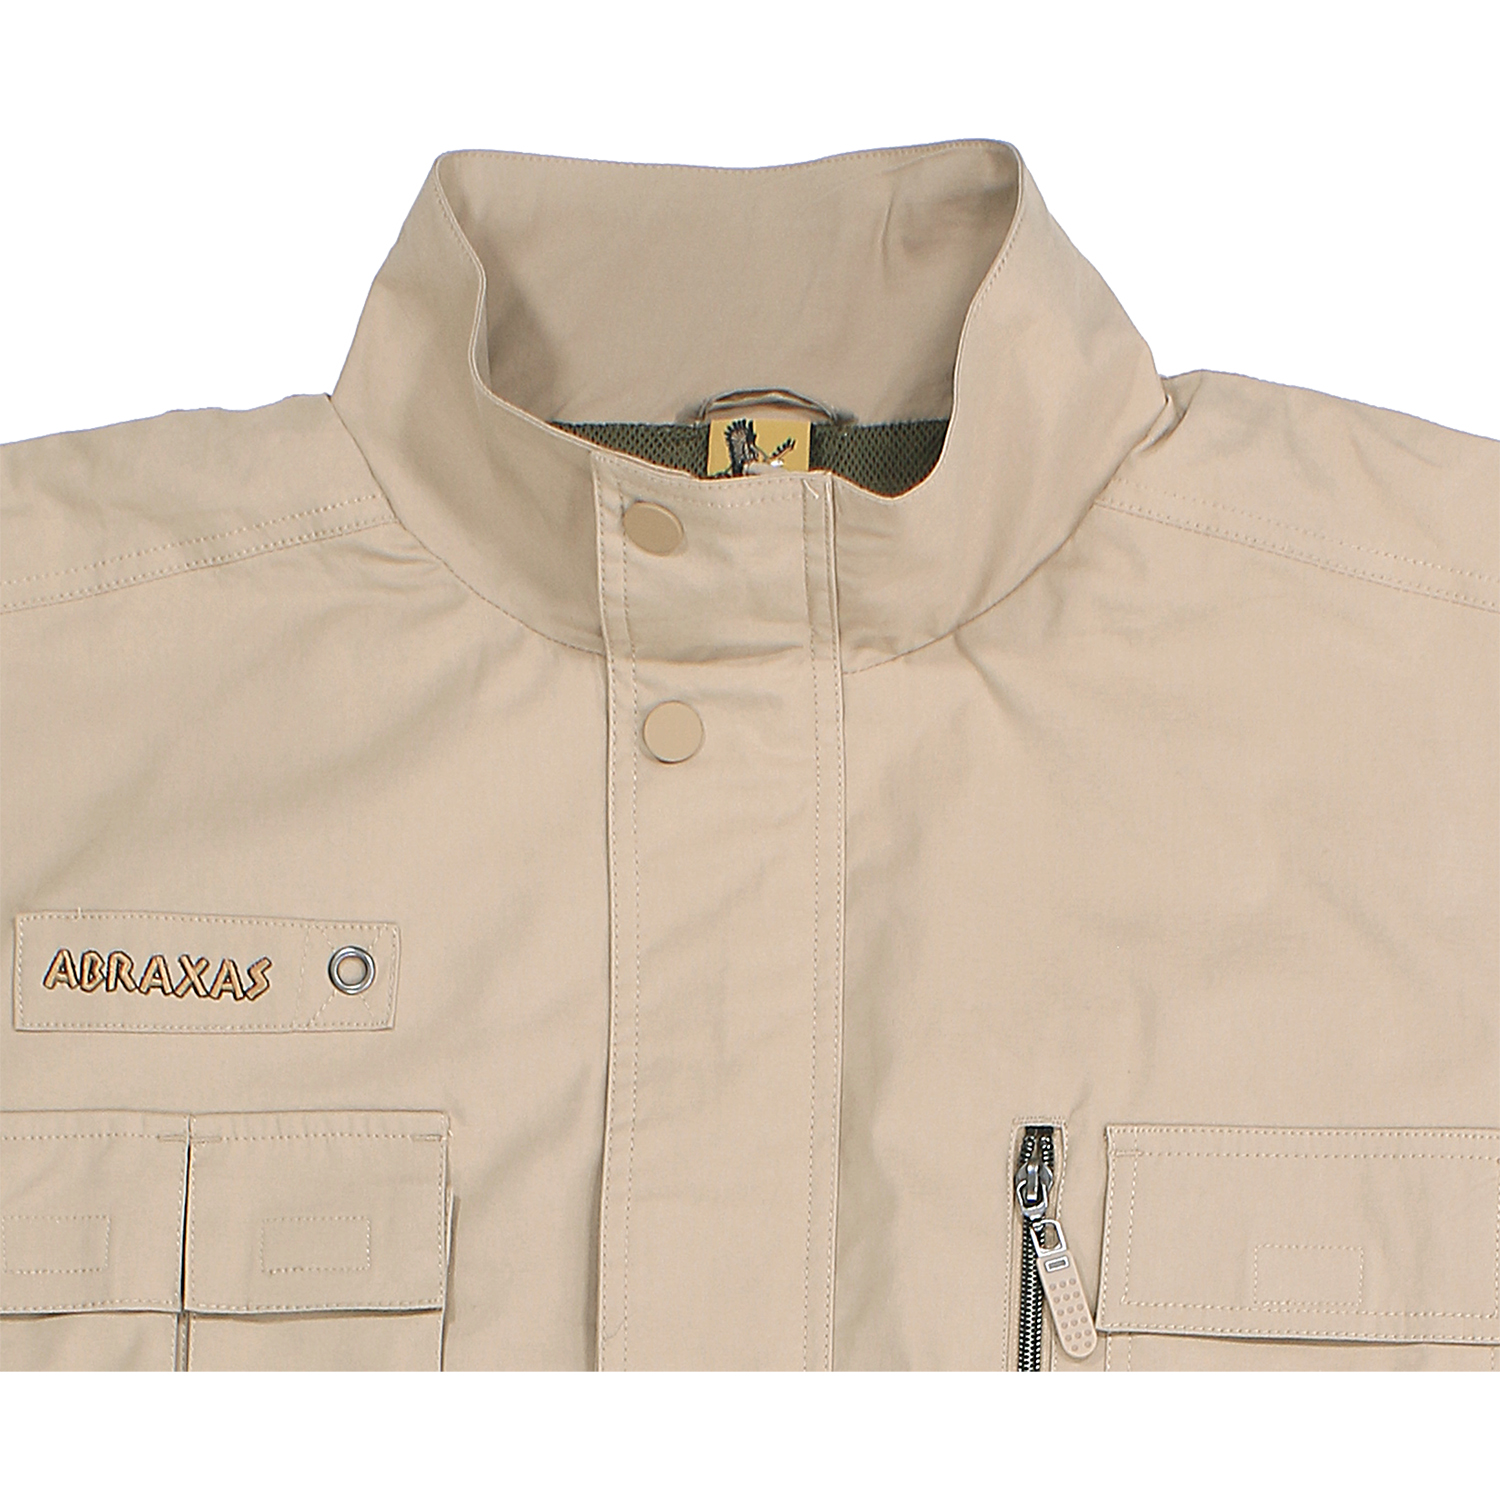 Detail Image to Outdoor vest in sand by Abraxas in oversizes up to 10XL